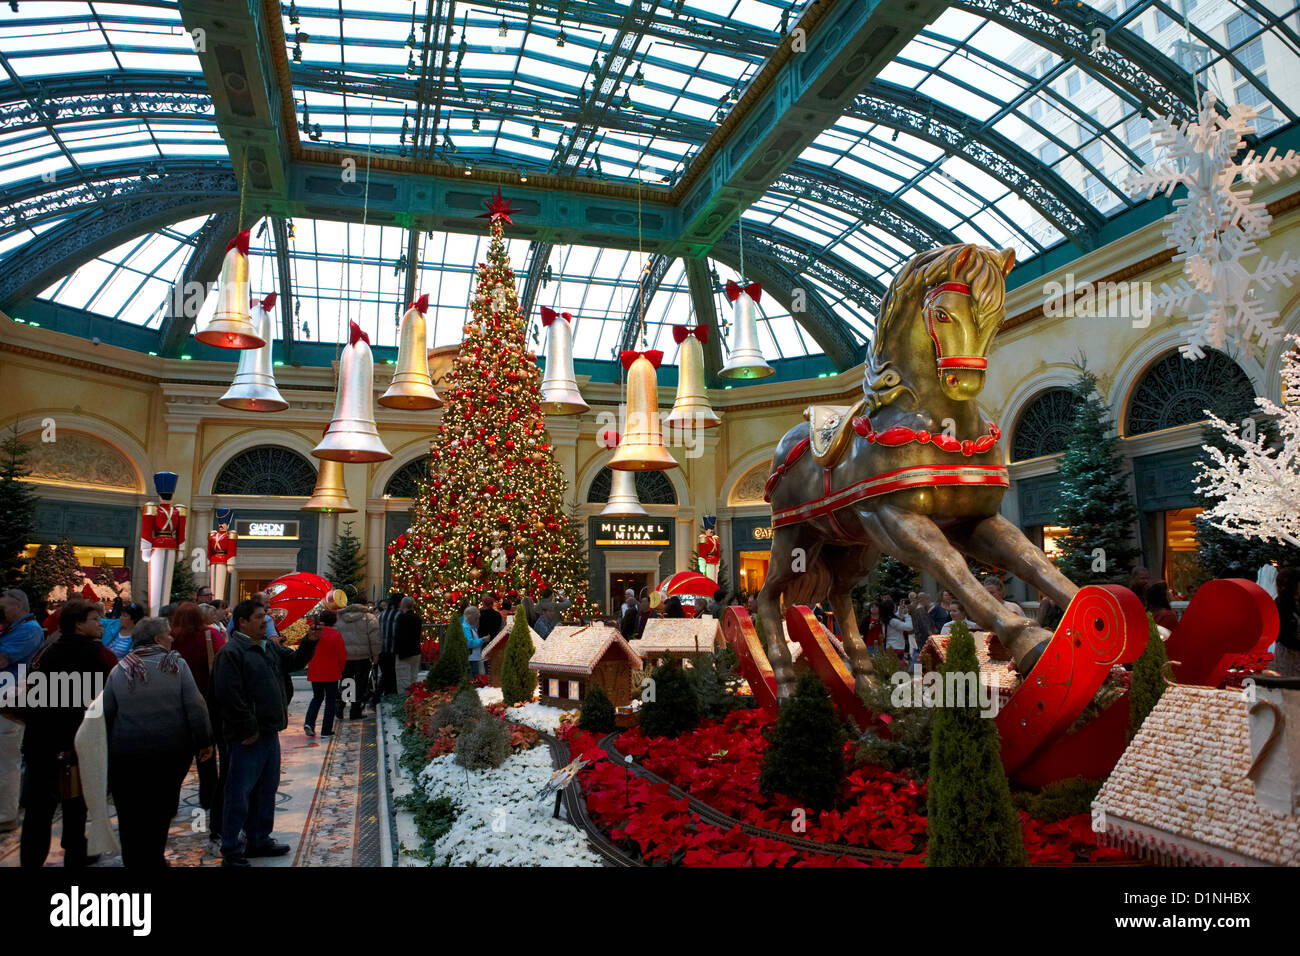 Christmas Decorations In The Bellagio Gardens Las Vegas Nevada Usa